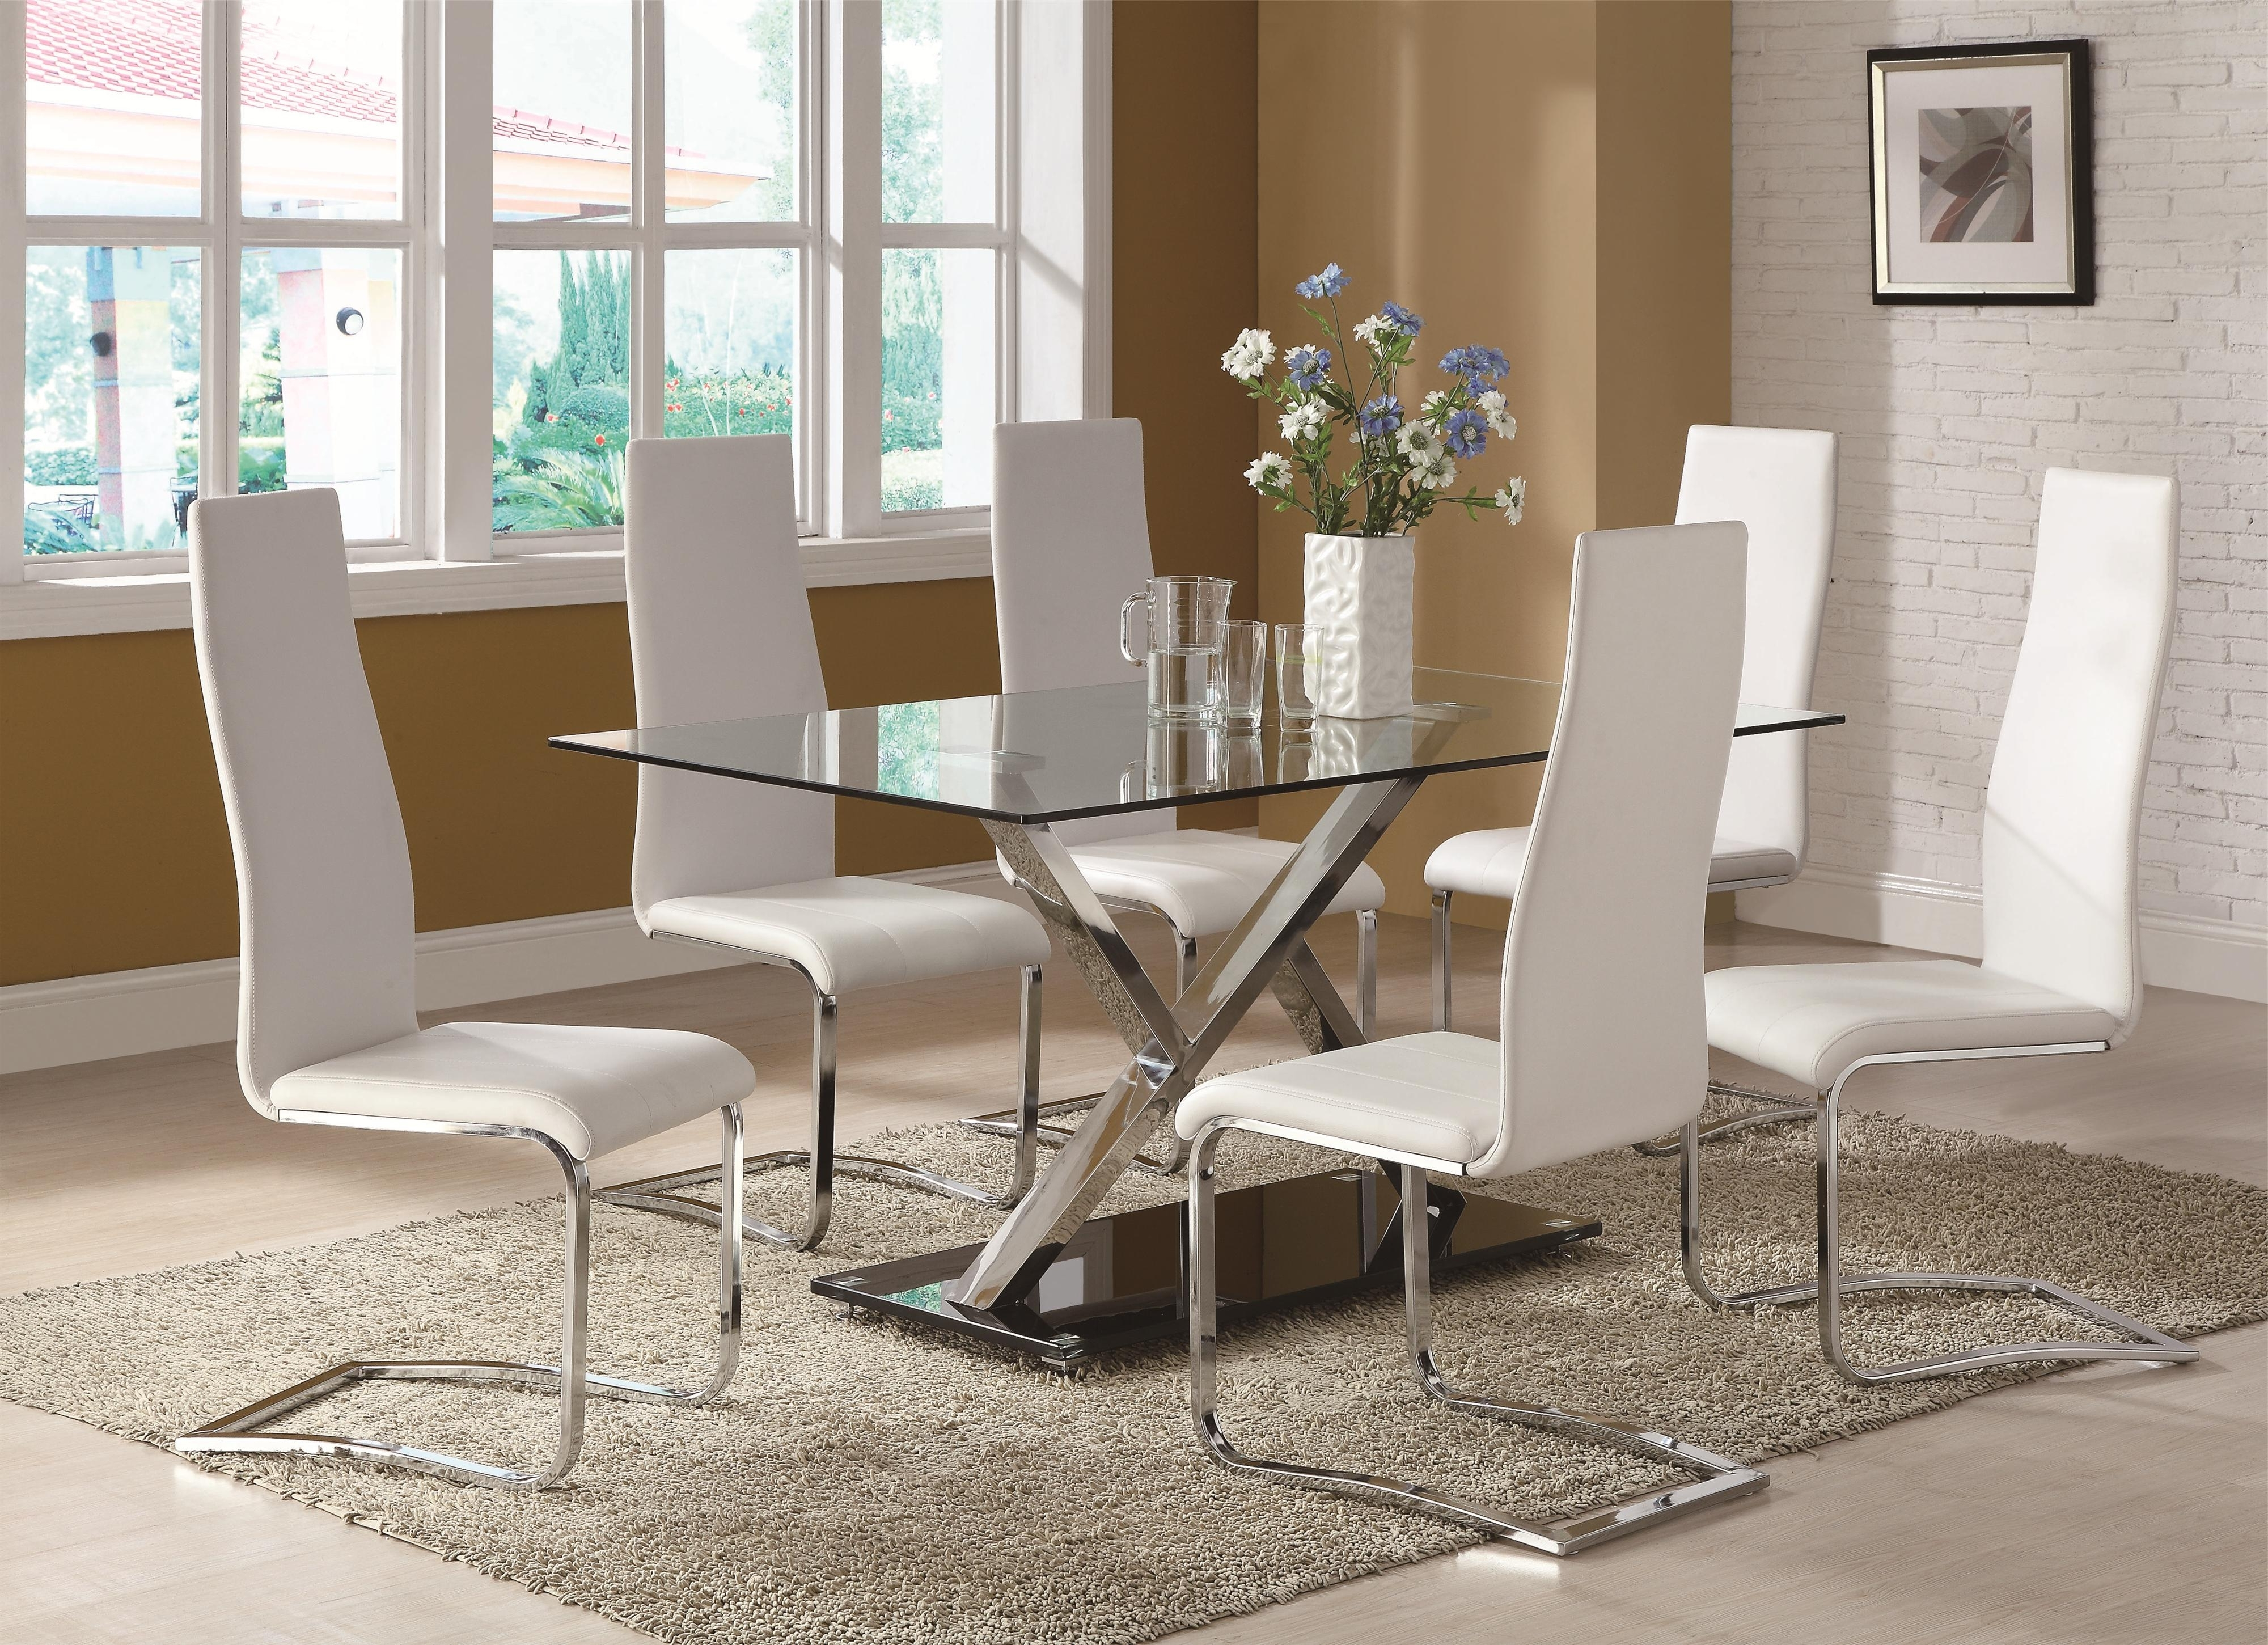 Coaster Modern Dining Contemporary Dining Room Set (View 7 of 25)